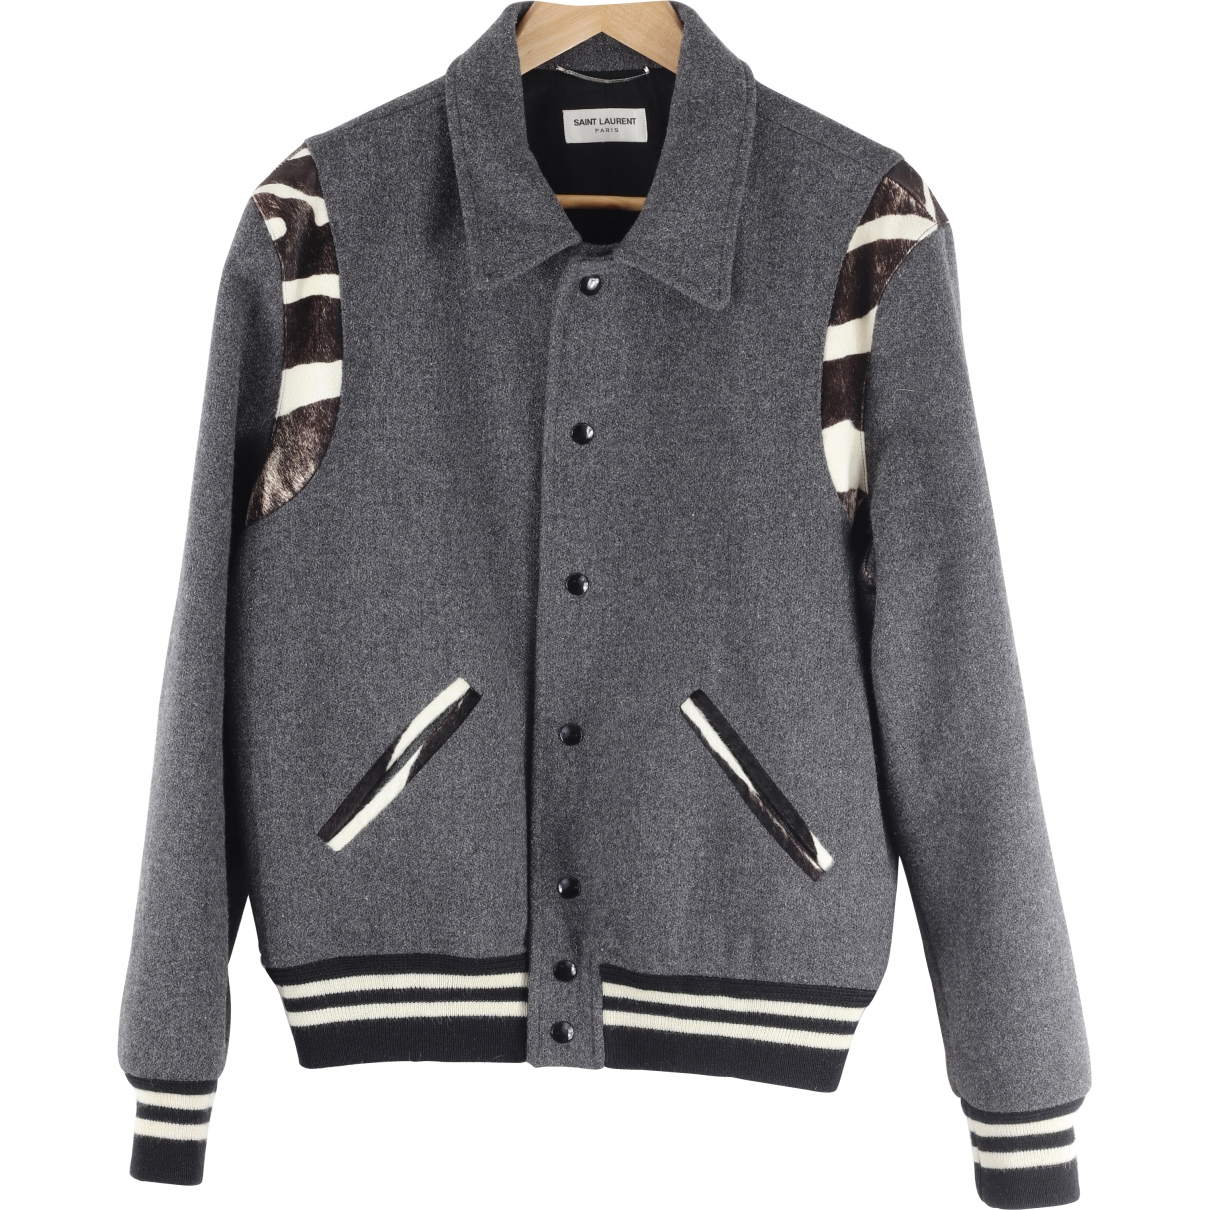 Saint Laurent \N Jacke in  Grau Wolle